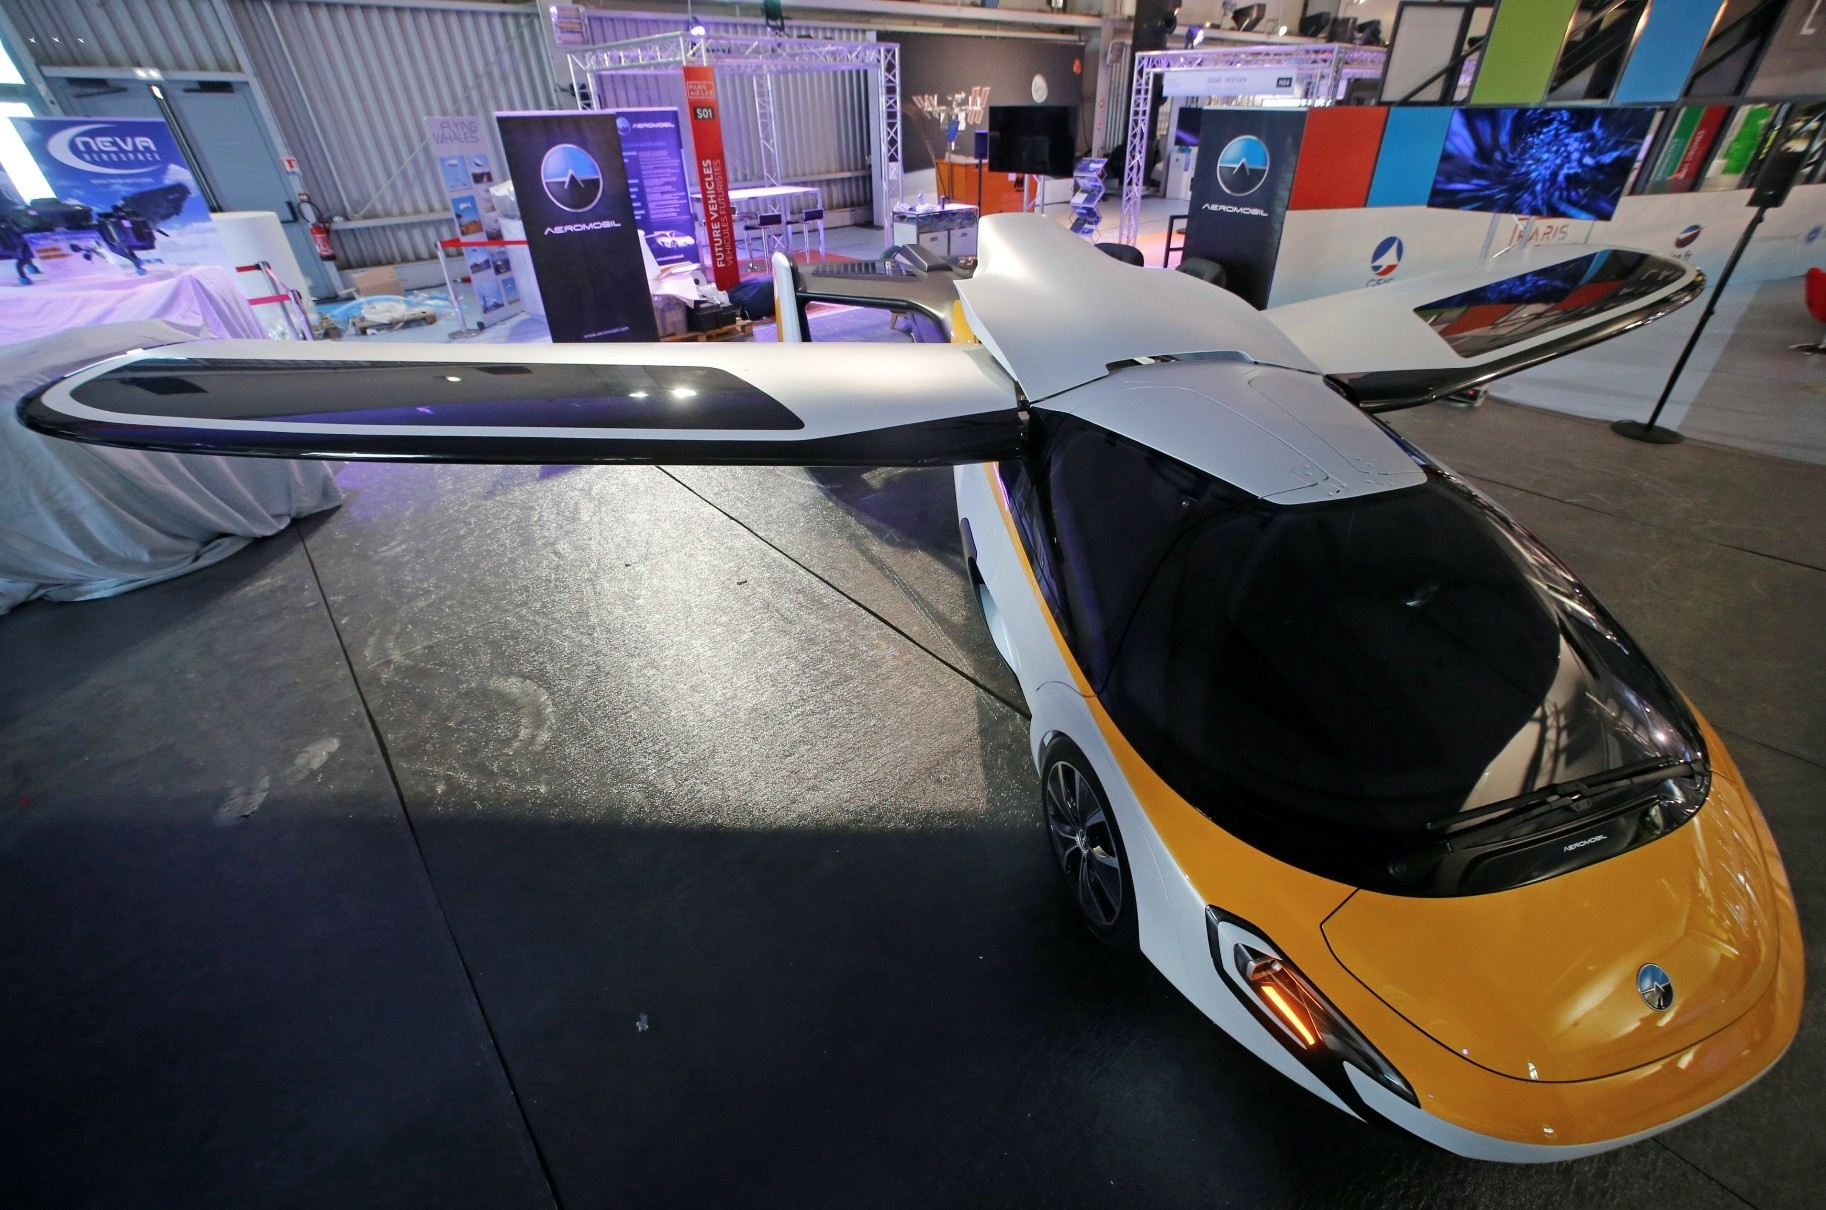 A flying car developed by AeroMobil, able to fly at a height of 3048 meters and a distance of 700 kilometers is seen on static display, before the opening of the 52nd Paris Air Show at Le Bourget Airport near Paris.